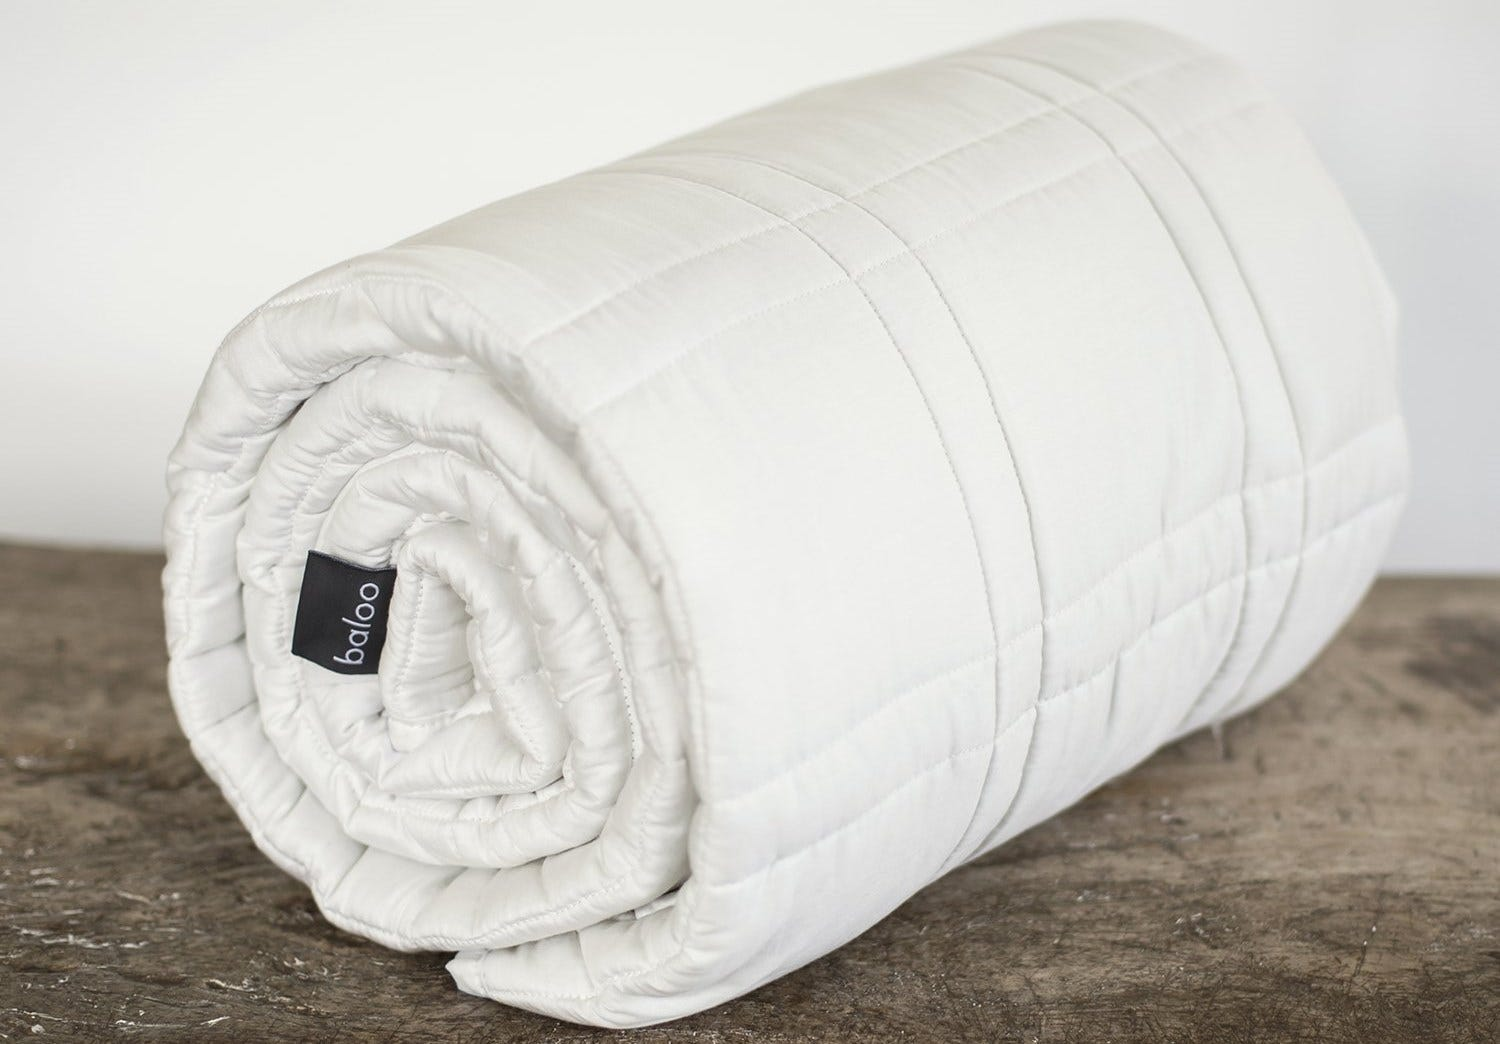 A white, rolled-up Baloo weighted blanket.